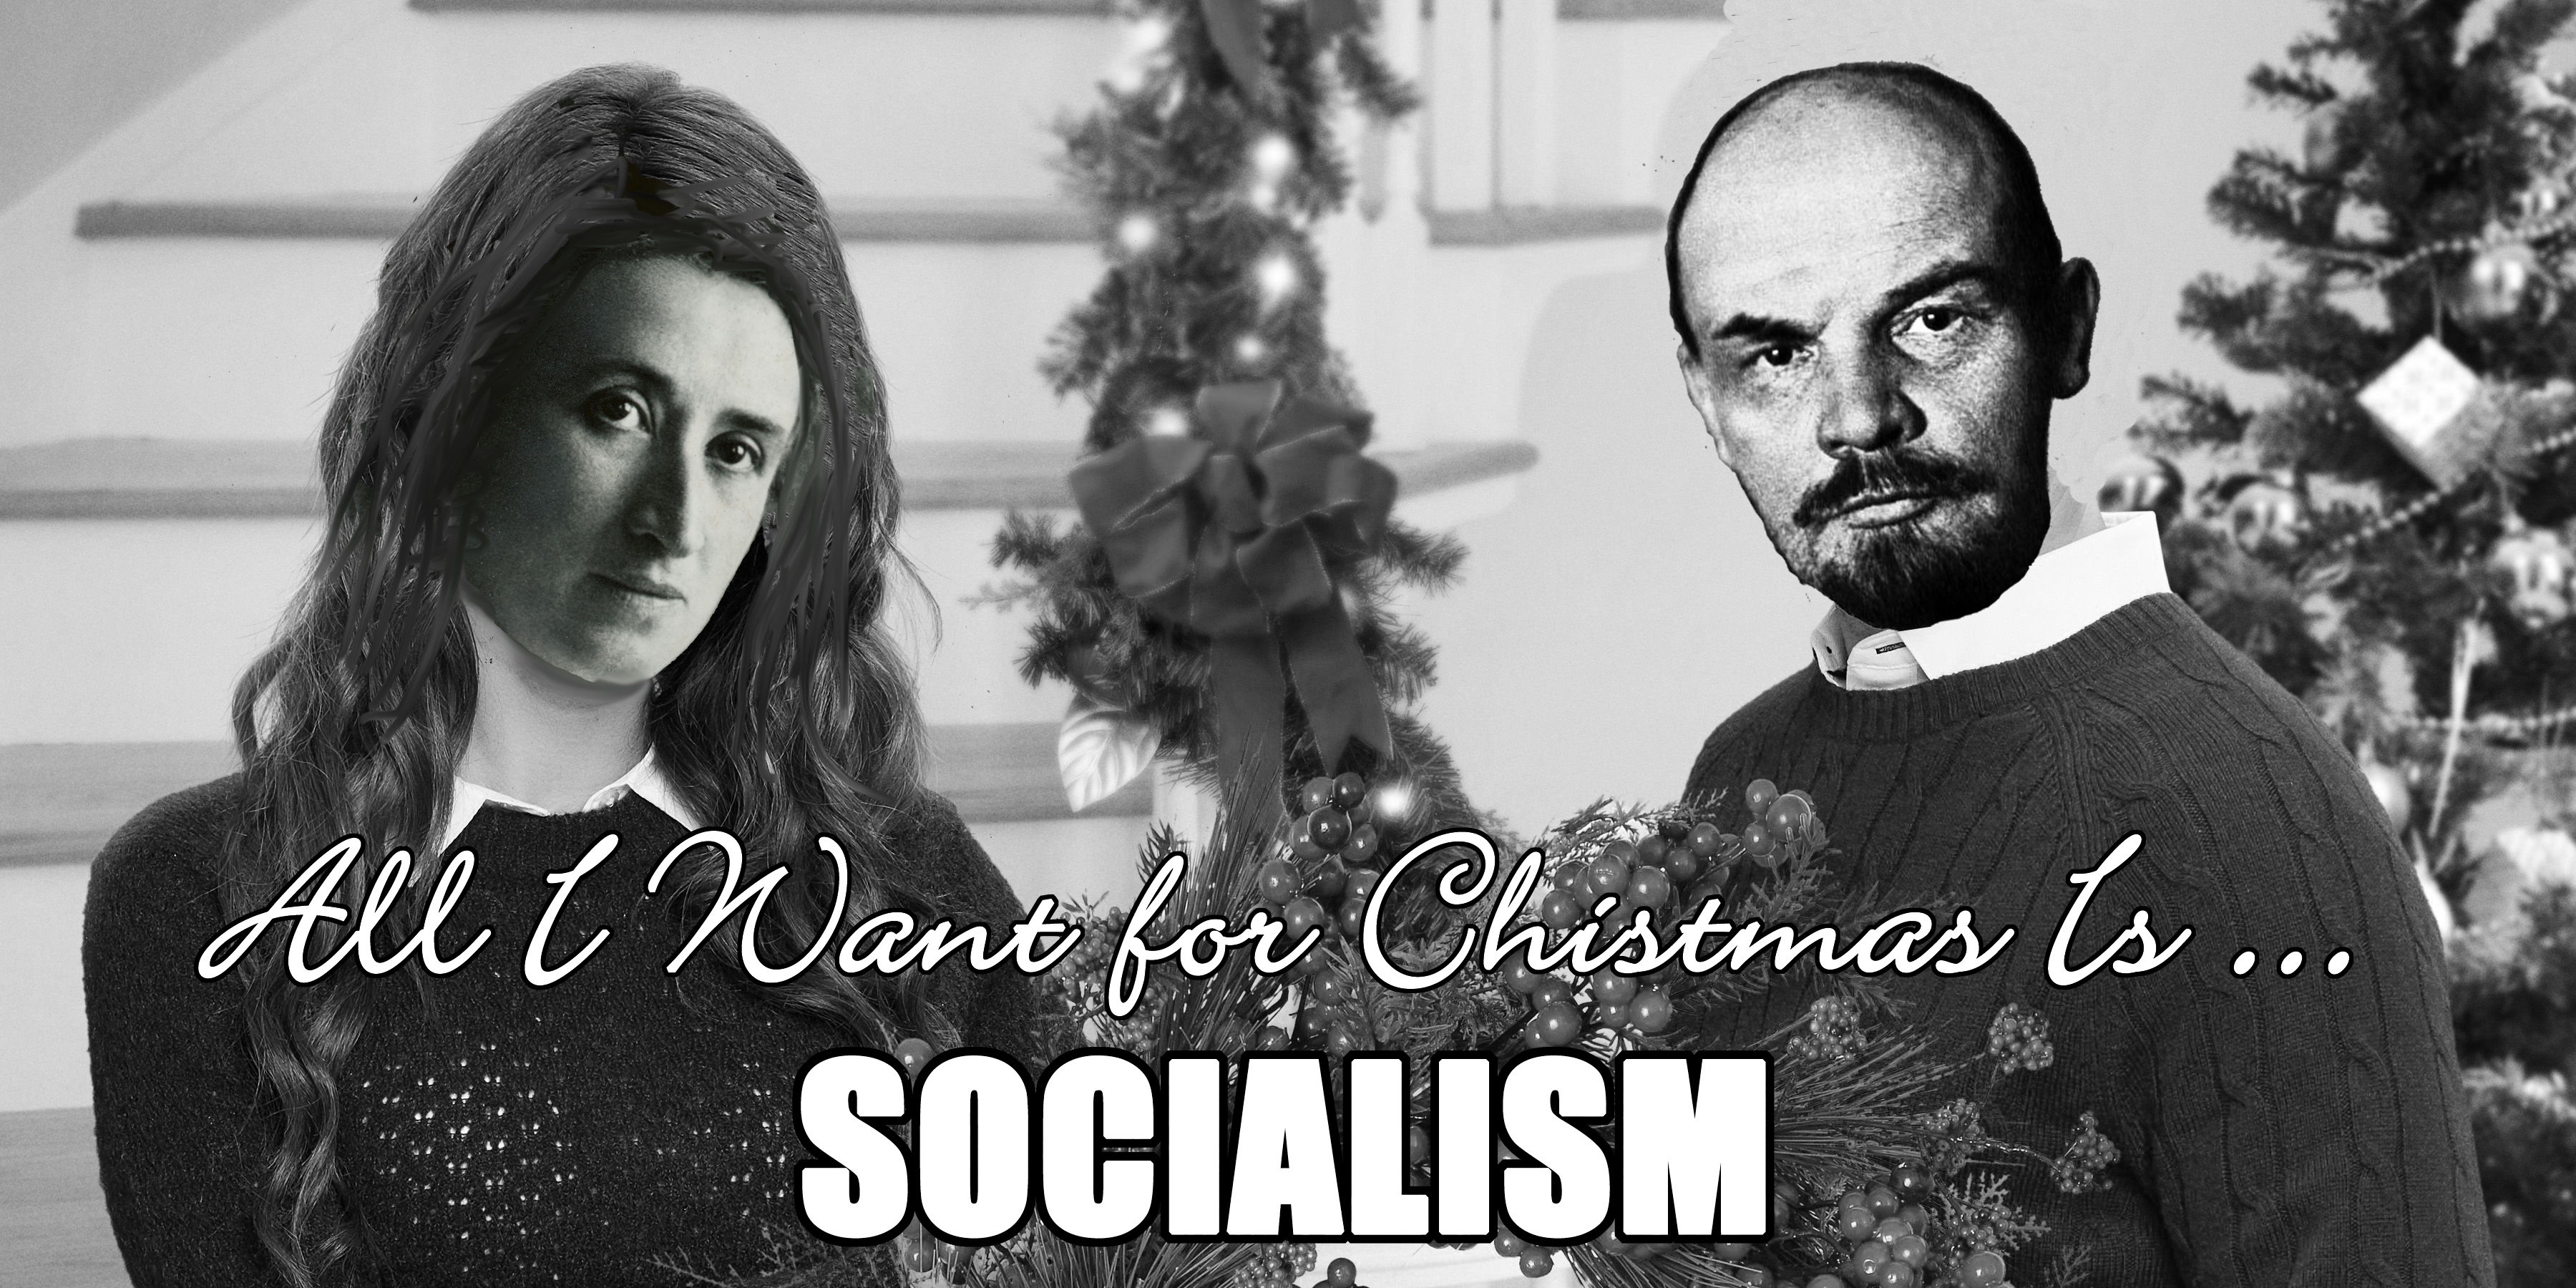 All I Want For Christmas Meme.All I Want For Christmas Is Socialism Impolitic